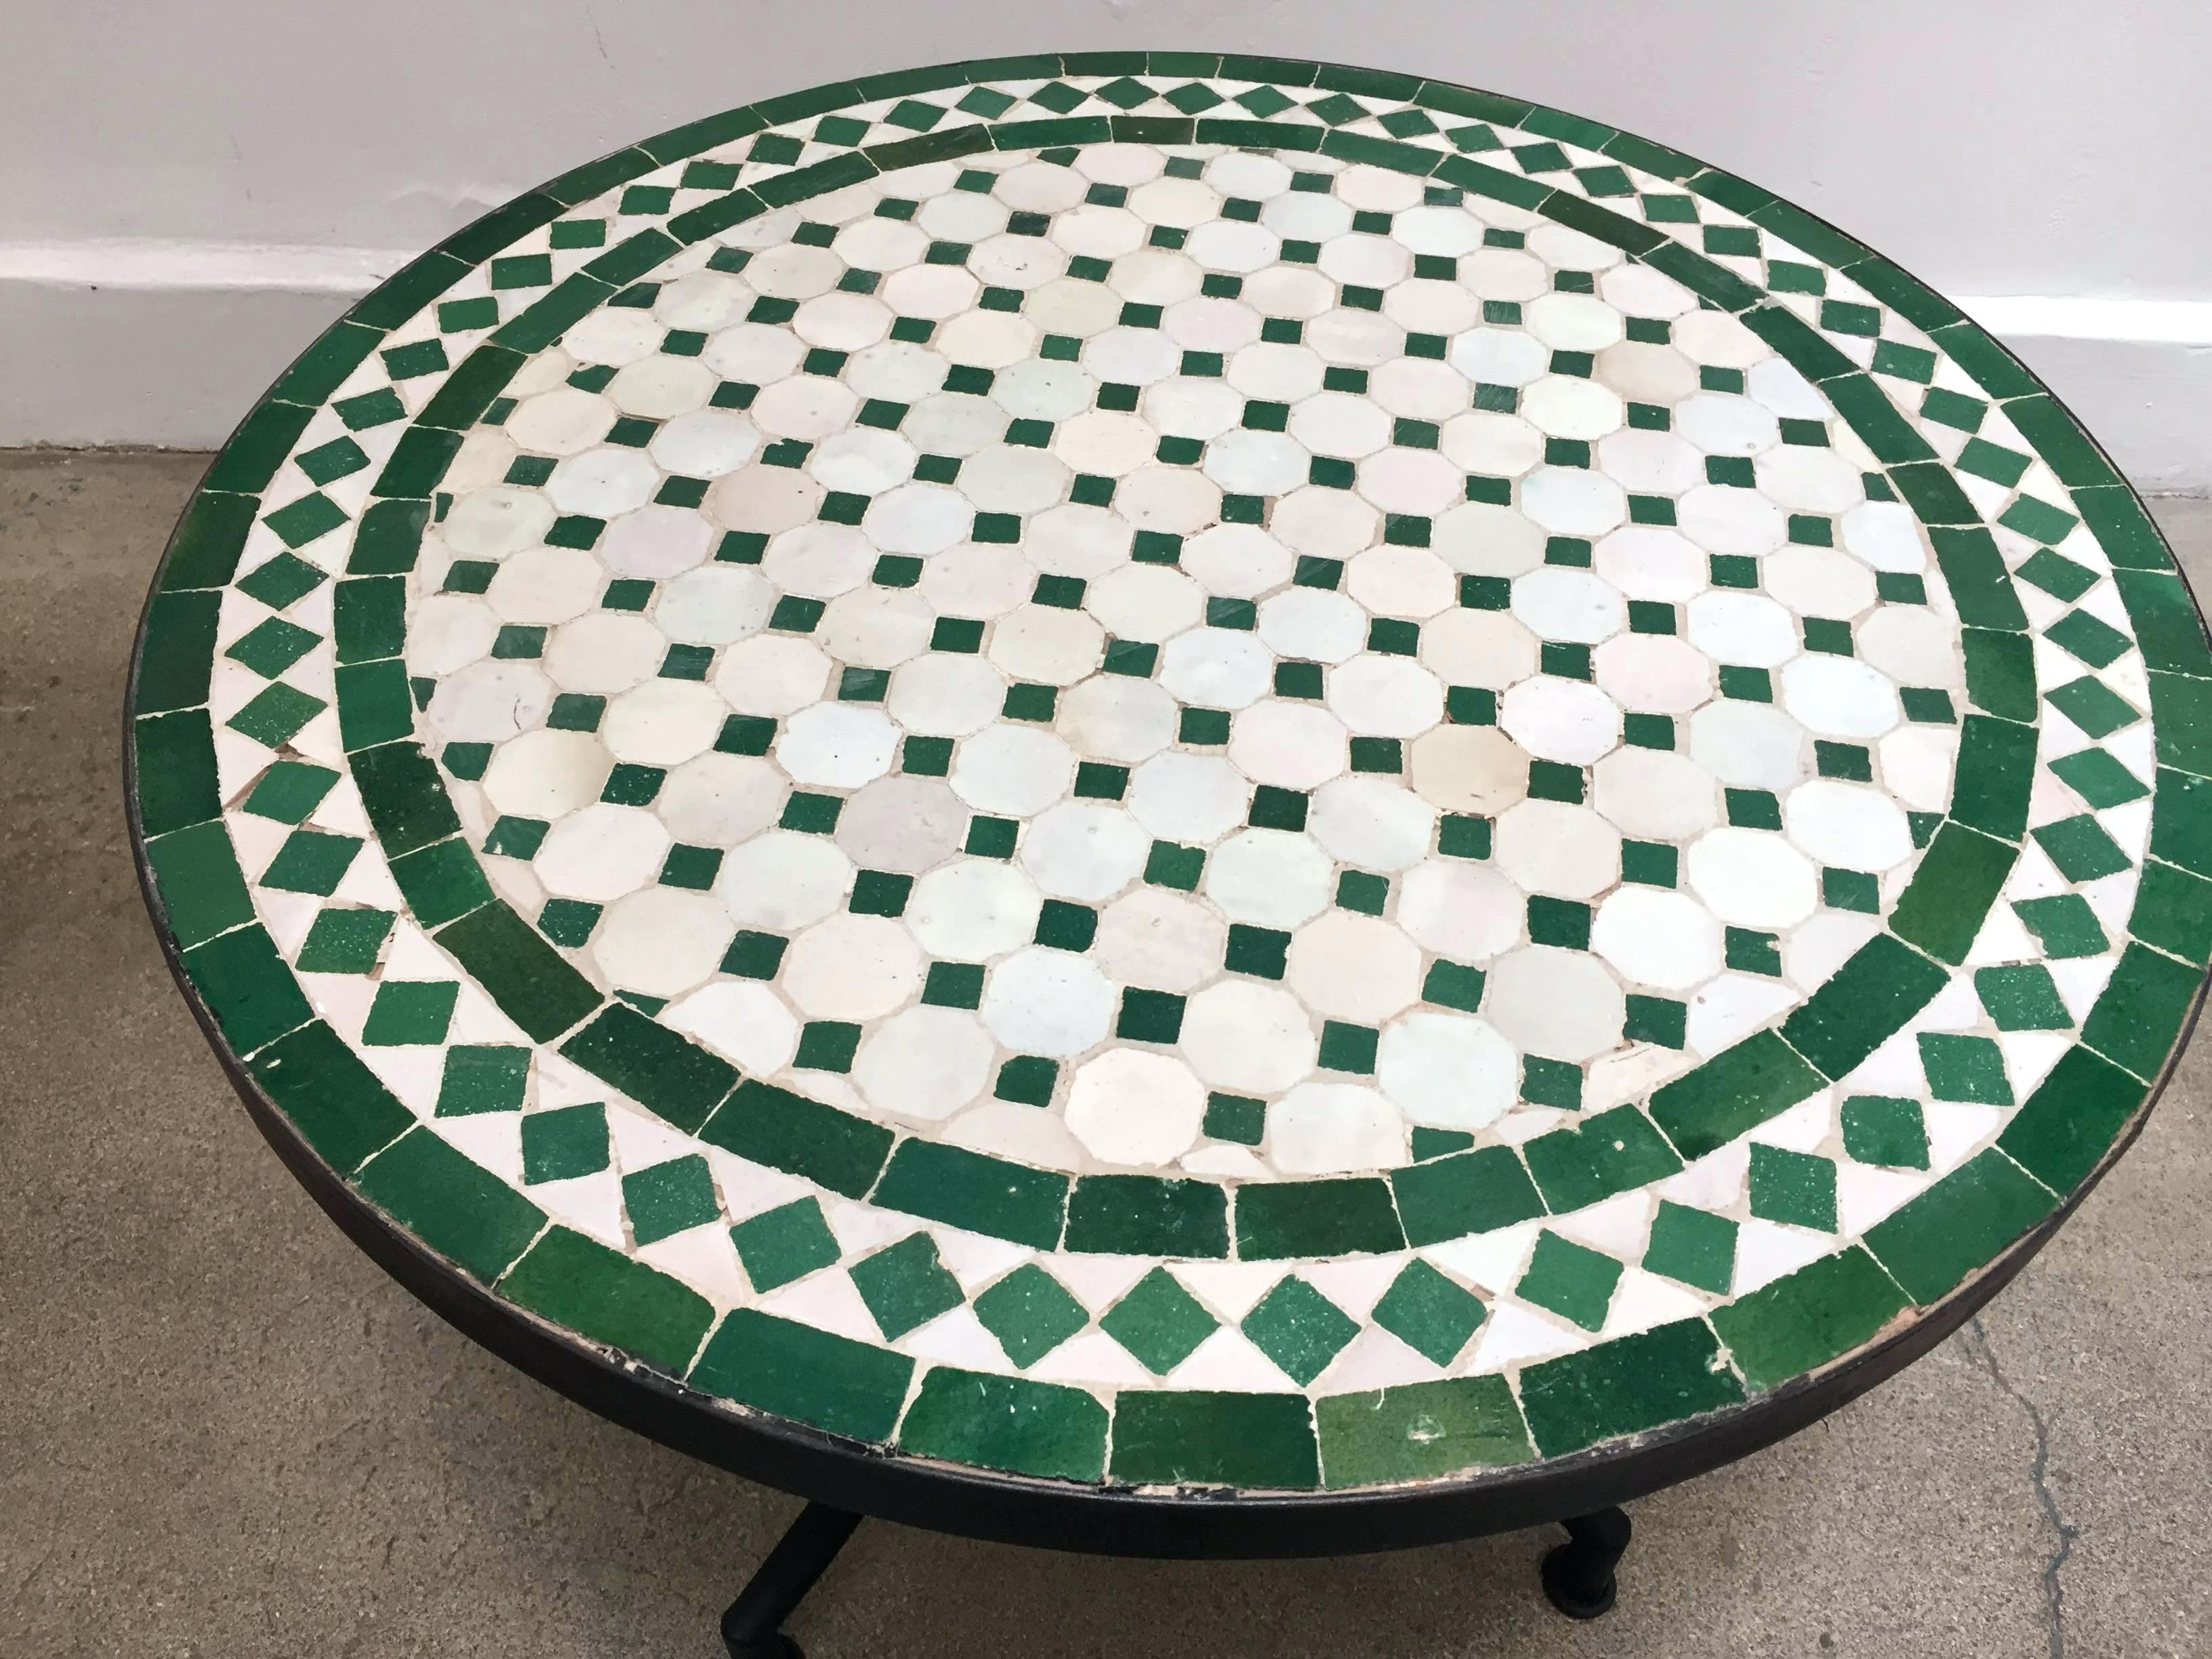 mosaic tile outdoor side table accent low iron base green and white for home theater ideas library large floor mirror kirklands bar stools square with storage target console